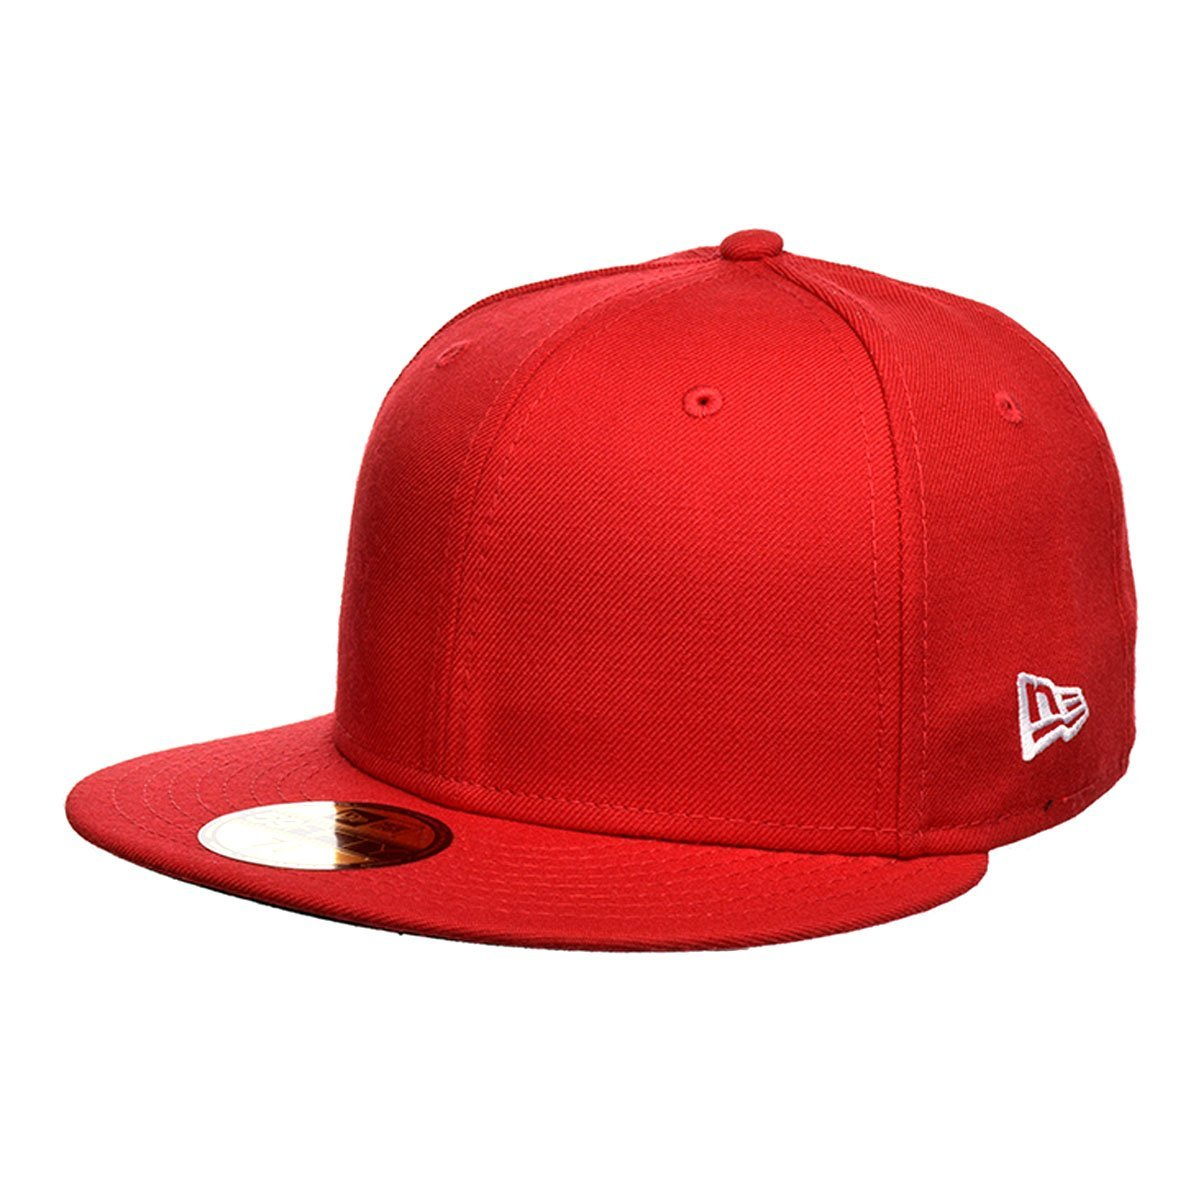 New Era Blank 59Fifty Fitted Hat (Red) 38f3737d2fd4